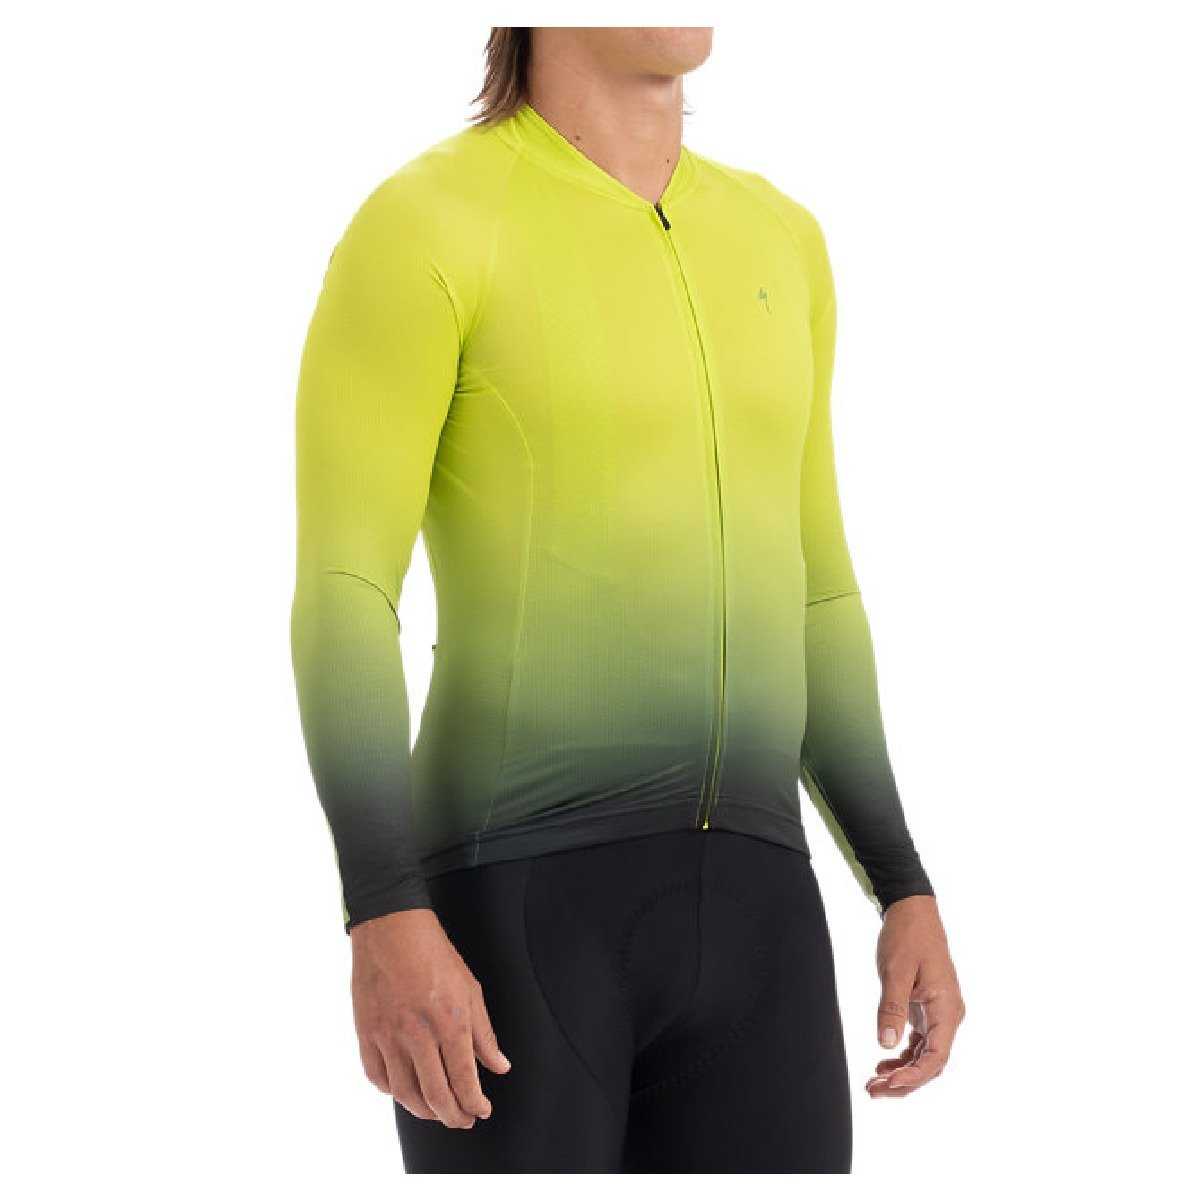 MEN'S HYPRVIZ SL AIR LONG SLEEVE JERSEY DEGRADE JAUNE VERT GRIS HOMME